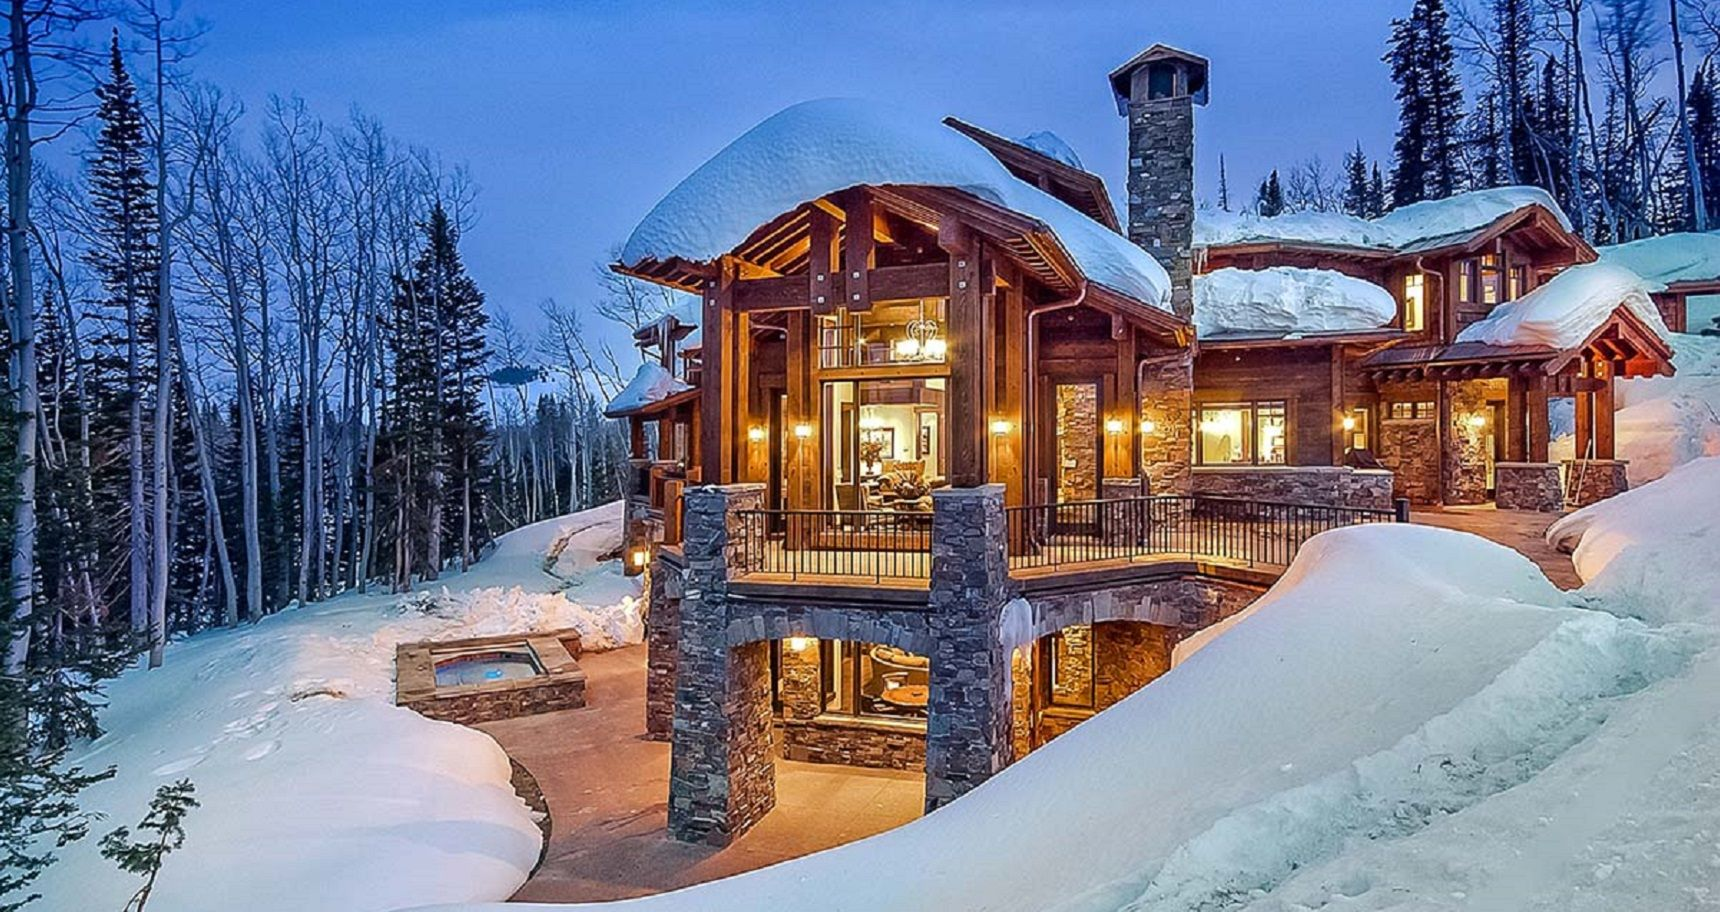 10 Luxurious Ski Resorts To Book This Winter